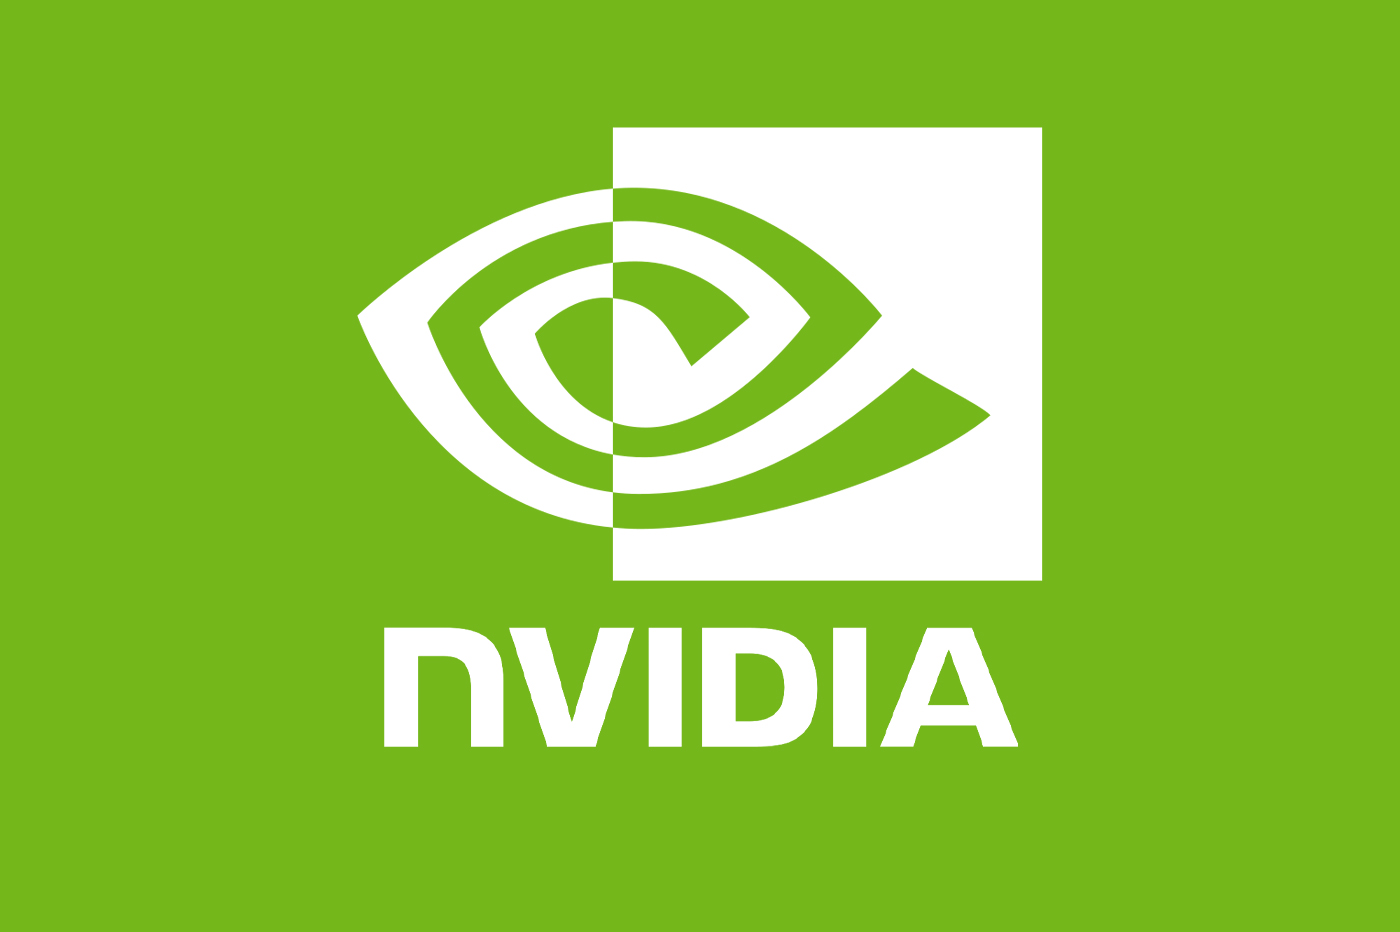 Section Nvidia